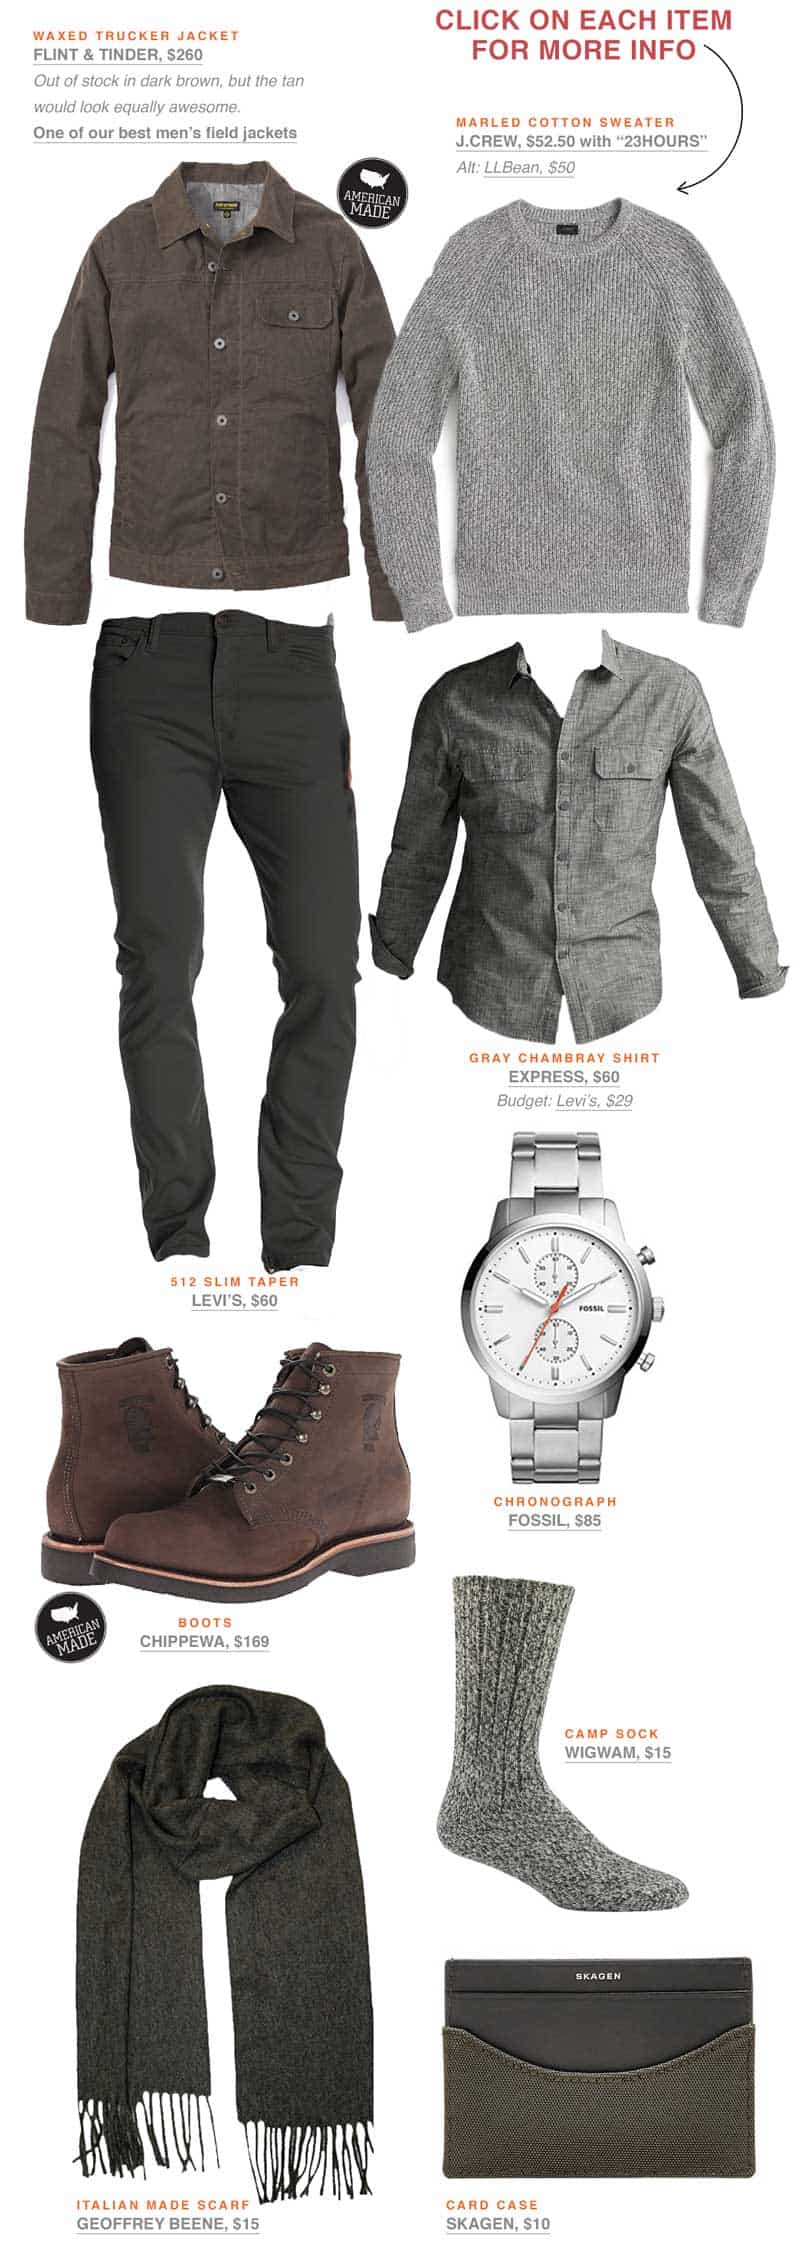 Men\'s spring outfit inspiration with gray jeans and brown boots